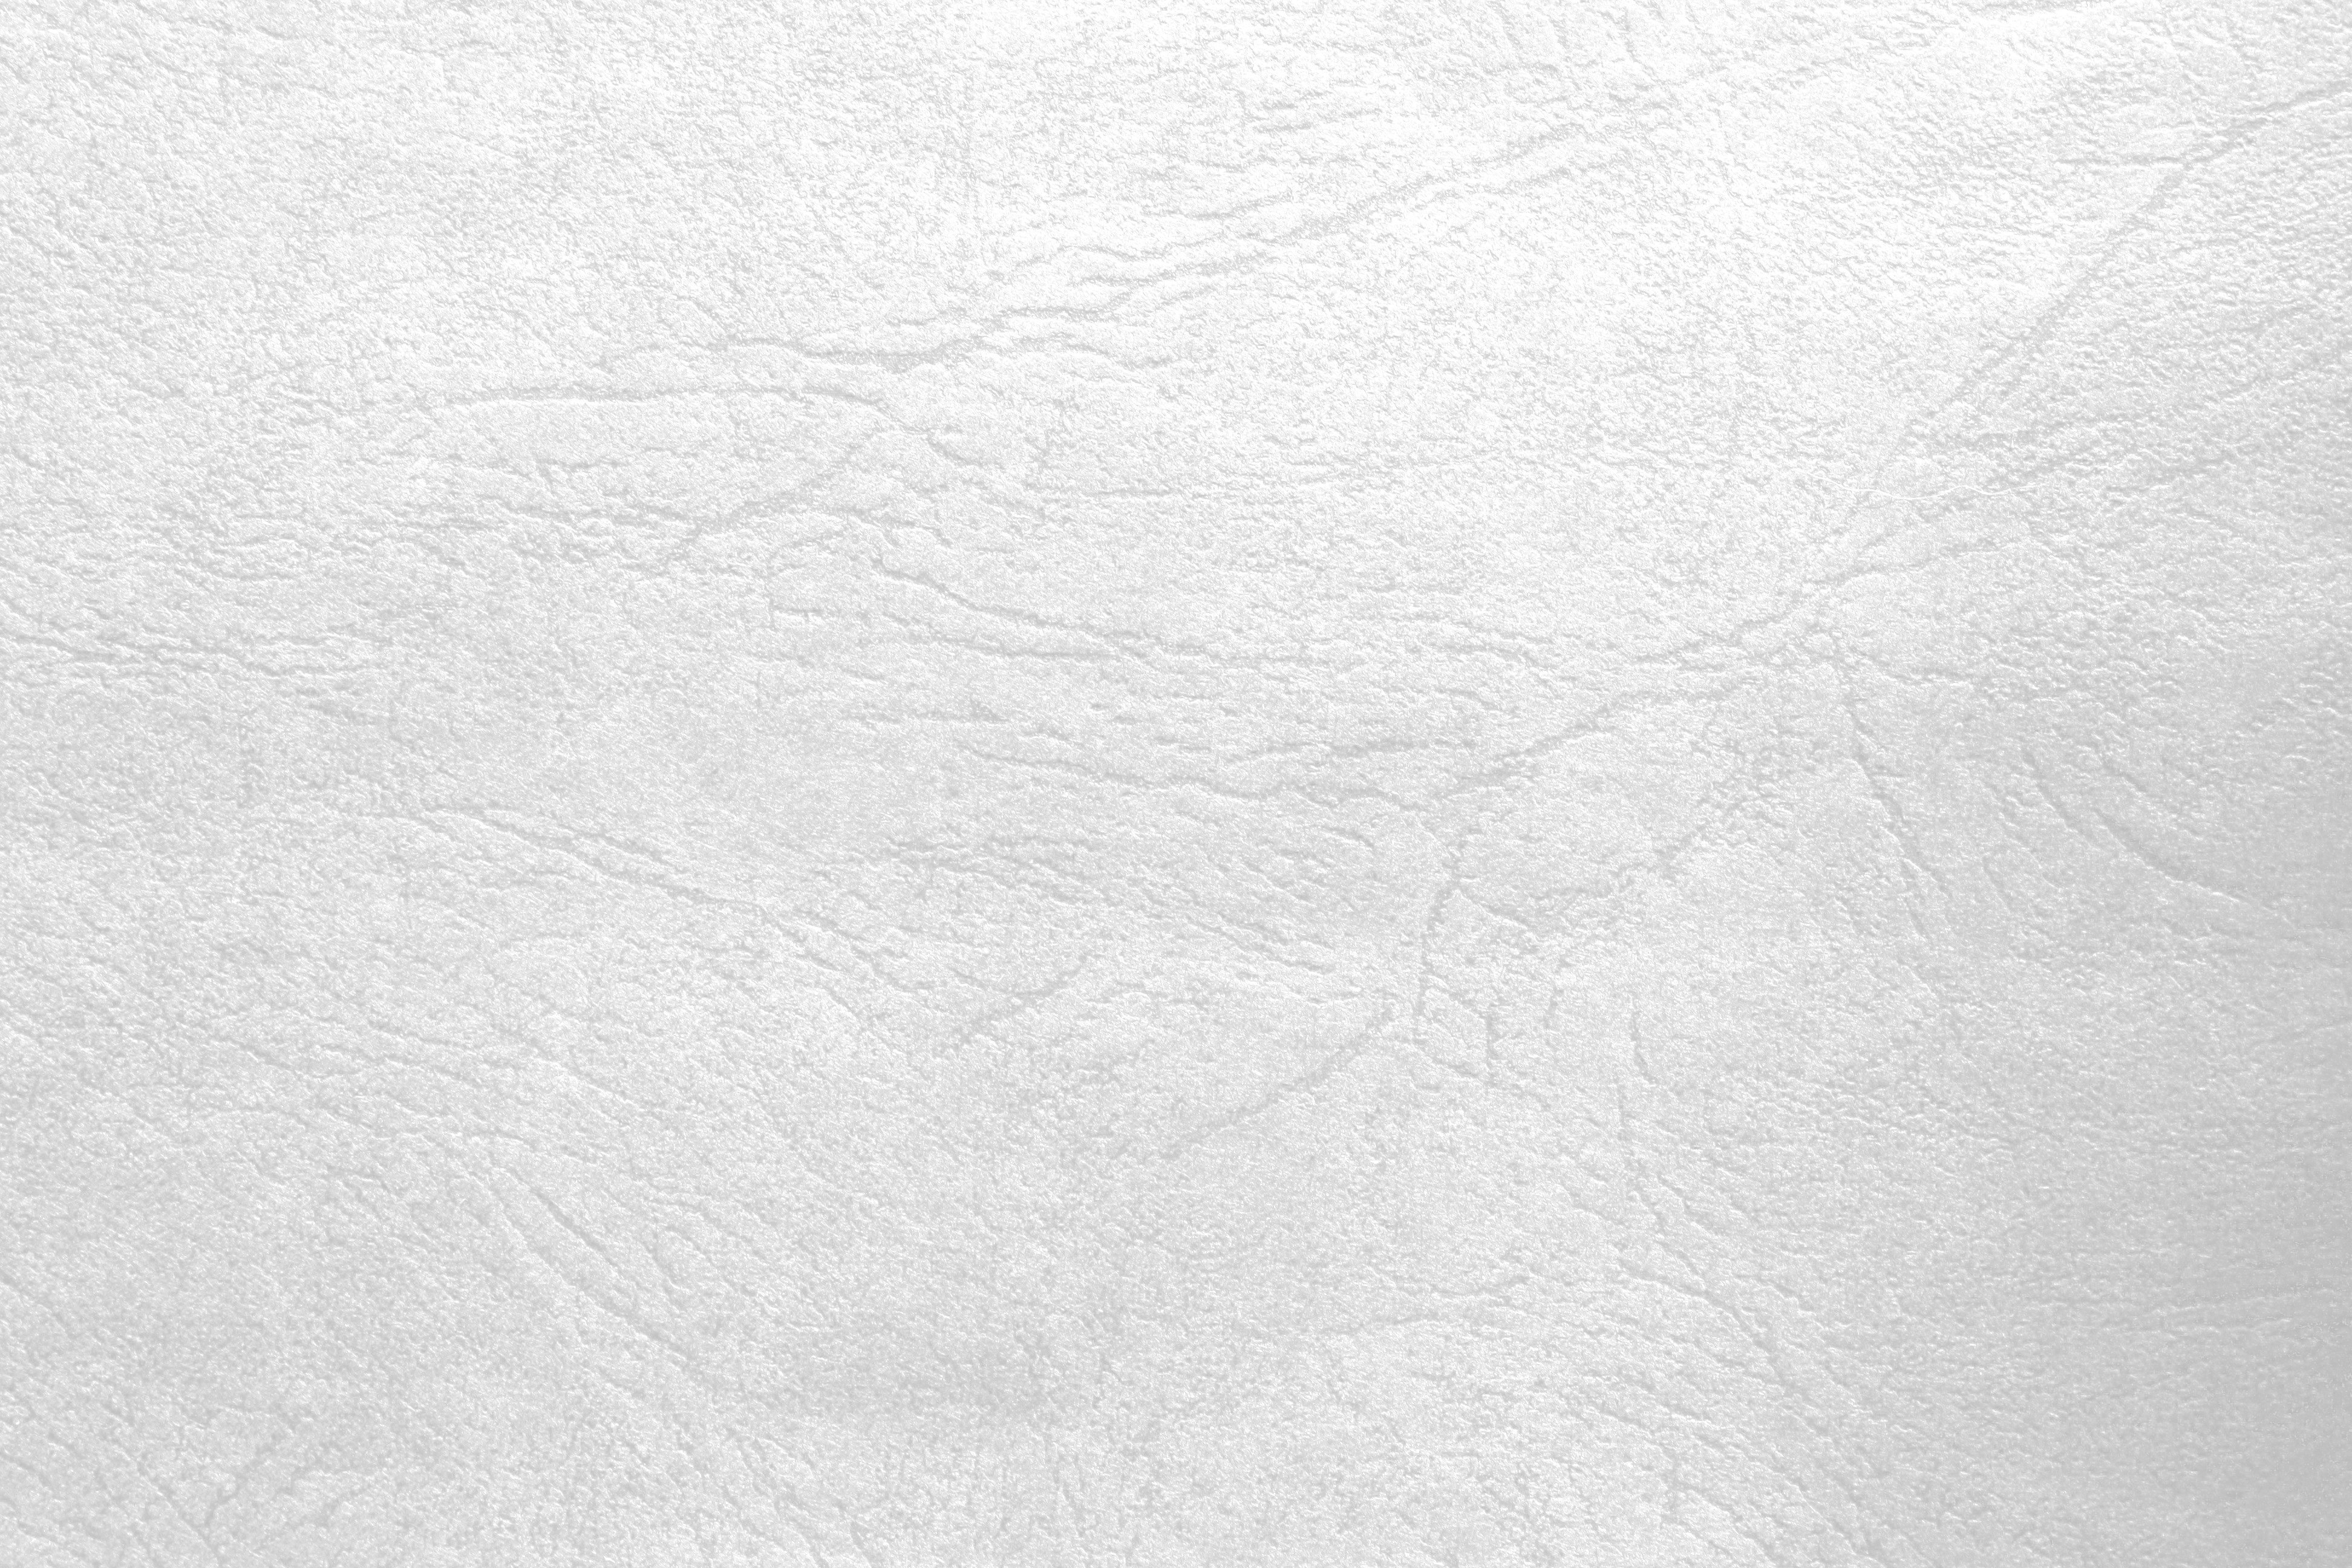 White Leather Textured Background